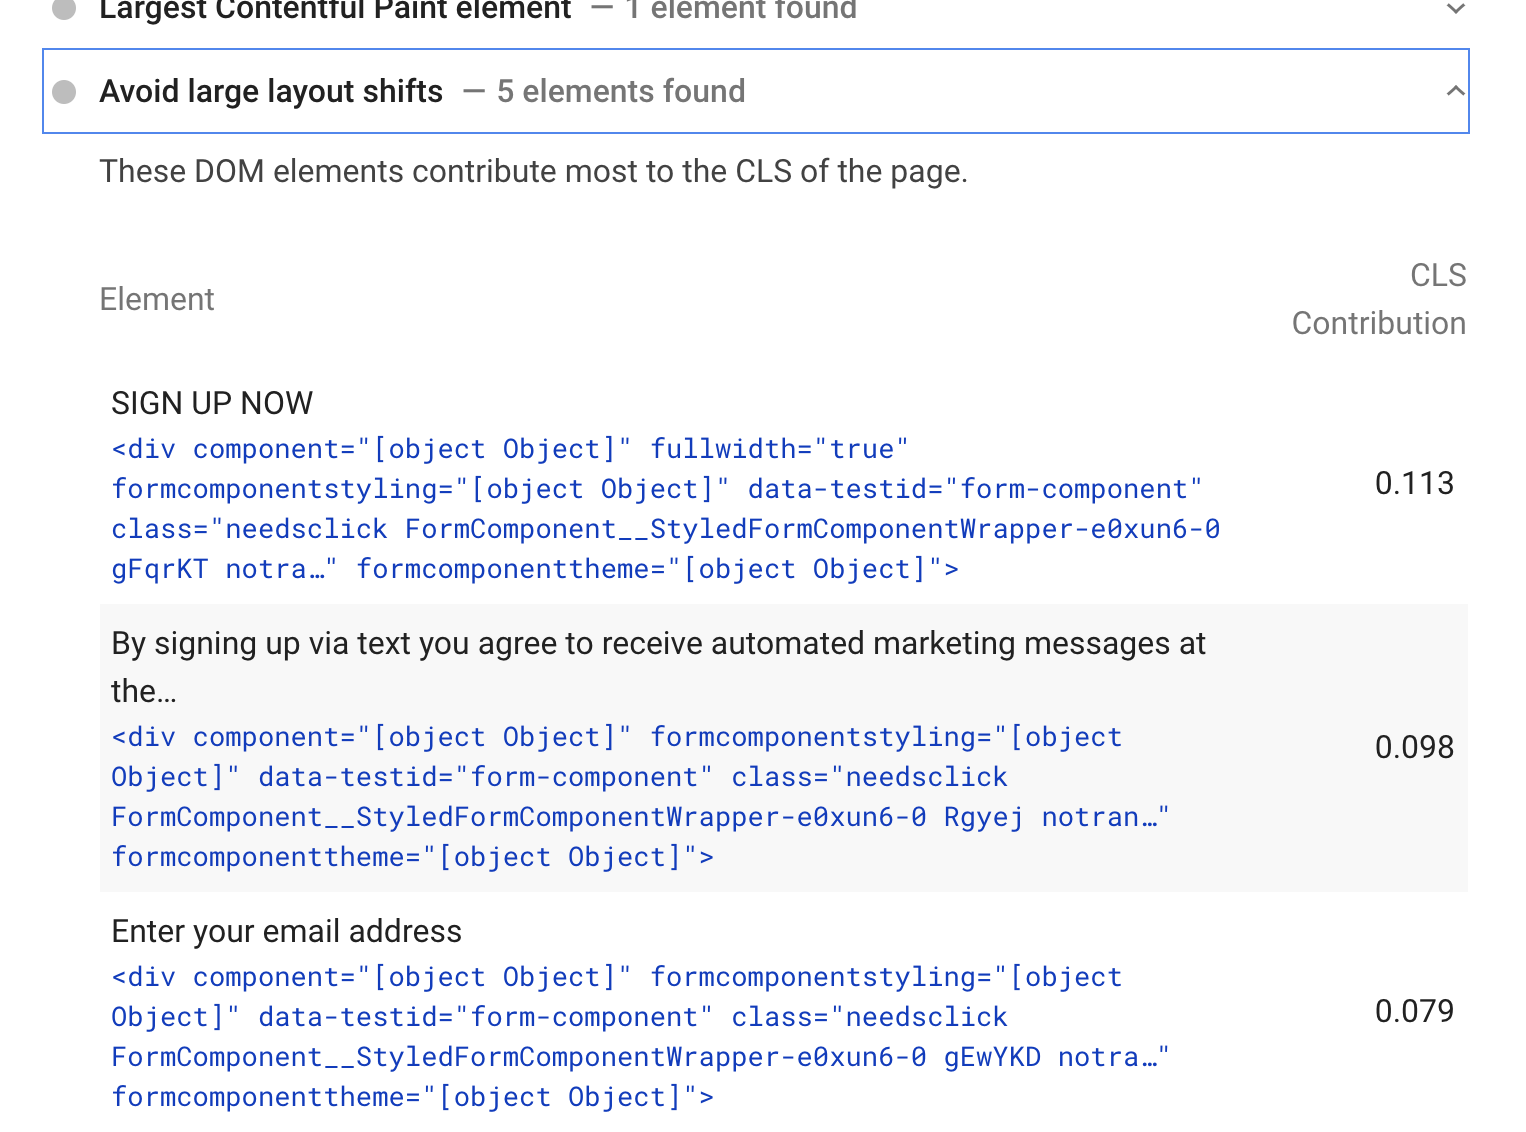 Issues causing high Cumulative Layout Shift found by PageSpeed Insights